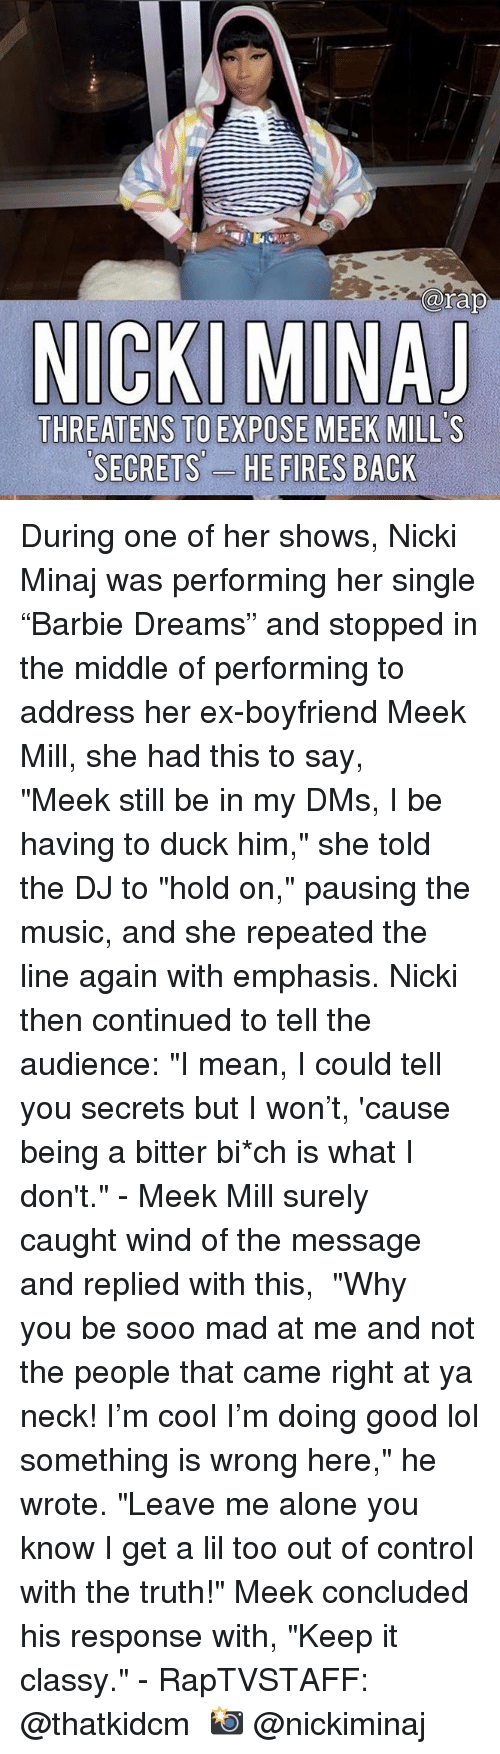 "Meek Mill: arap  THREATENS TO EXPOSE MEEK MILL'S  SECRETS'-  ES During one of her shows, Nicki Minaj was performing her single ""Barbie Dreams"" and stopped in the middle of performing to address her ex-boyfriend Meek Mill, she had this to say, ⁣ ⁣ ""Meek still be in my DMs, I be having to duck him,"" she told the DJ to ""hold on,"" pausing the music, and she repeated the line again with emphasis. Nicki then continued to tell the audience: ""I mean, I could tell you secrets but I won't, 'cause being a bitter bi*ch is what I don't.""⁣ -⁣ Meek Mill surely caught wind of the message and replied with this,⁣ ⁣ ""Why you be sooo mad at me and not the people that came right at ya neck! I'm cool I'm doing good lol something is wrong here,"" he wrote. ""Leave me alone you know I get a lil too out of control with the truth!"" Meek concluded his response with, ""Keep it classy.""⁣ -⁣ RapTVSTAFF: @thatkidcm⁣ 📸 @nickiminaj"